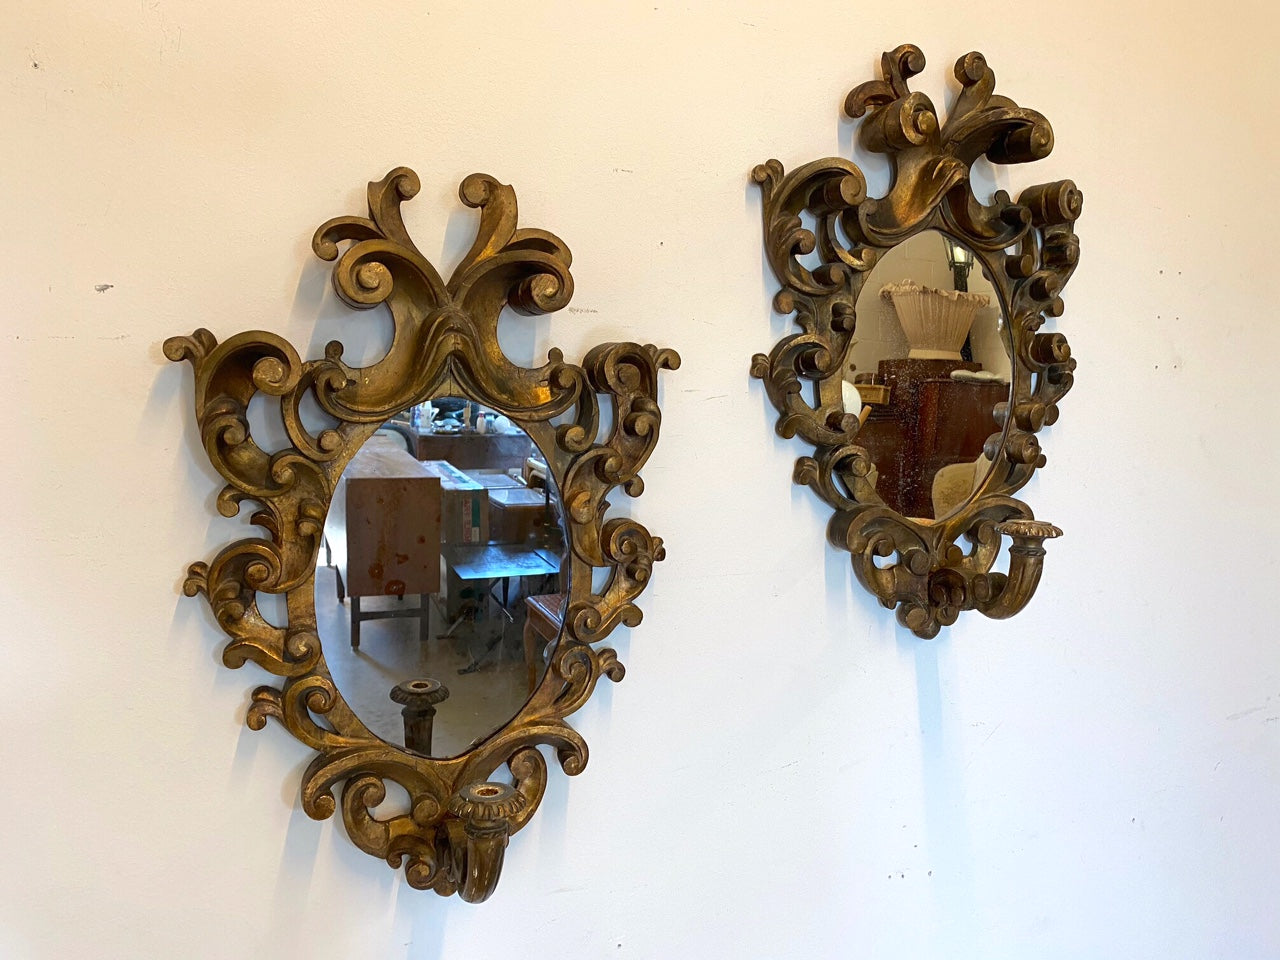 #6705-PIGG - Pair of Gilded Wood Wall Sconces, ca. 1920